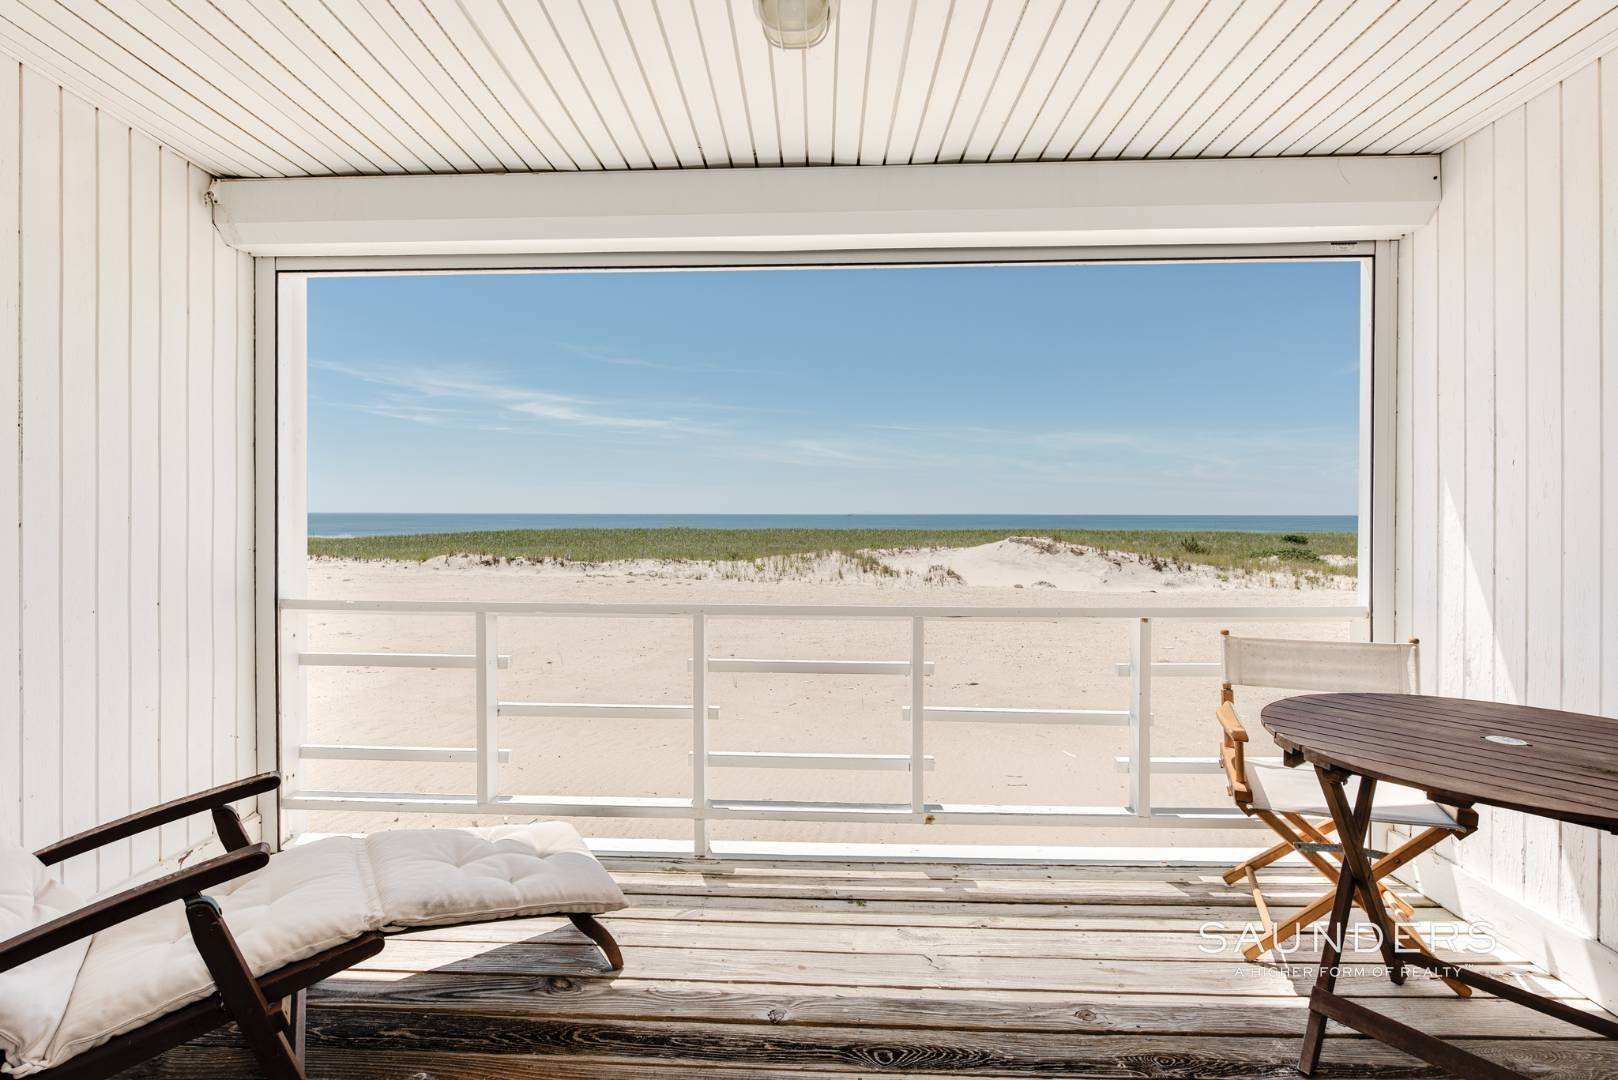 Co-op Properties for Sale at Own Your Super Summer At The Sandcastle 459 Dune Road, Unit 11a, Westhampton Beach Village, Southampton Town, NY 11978